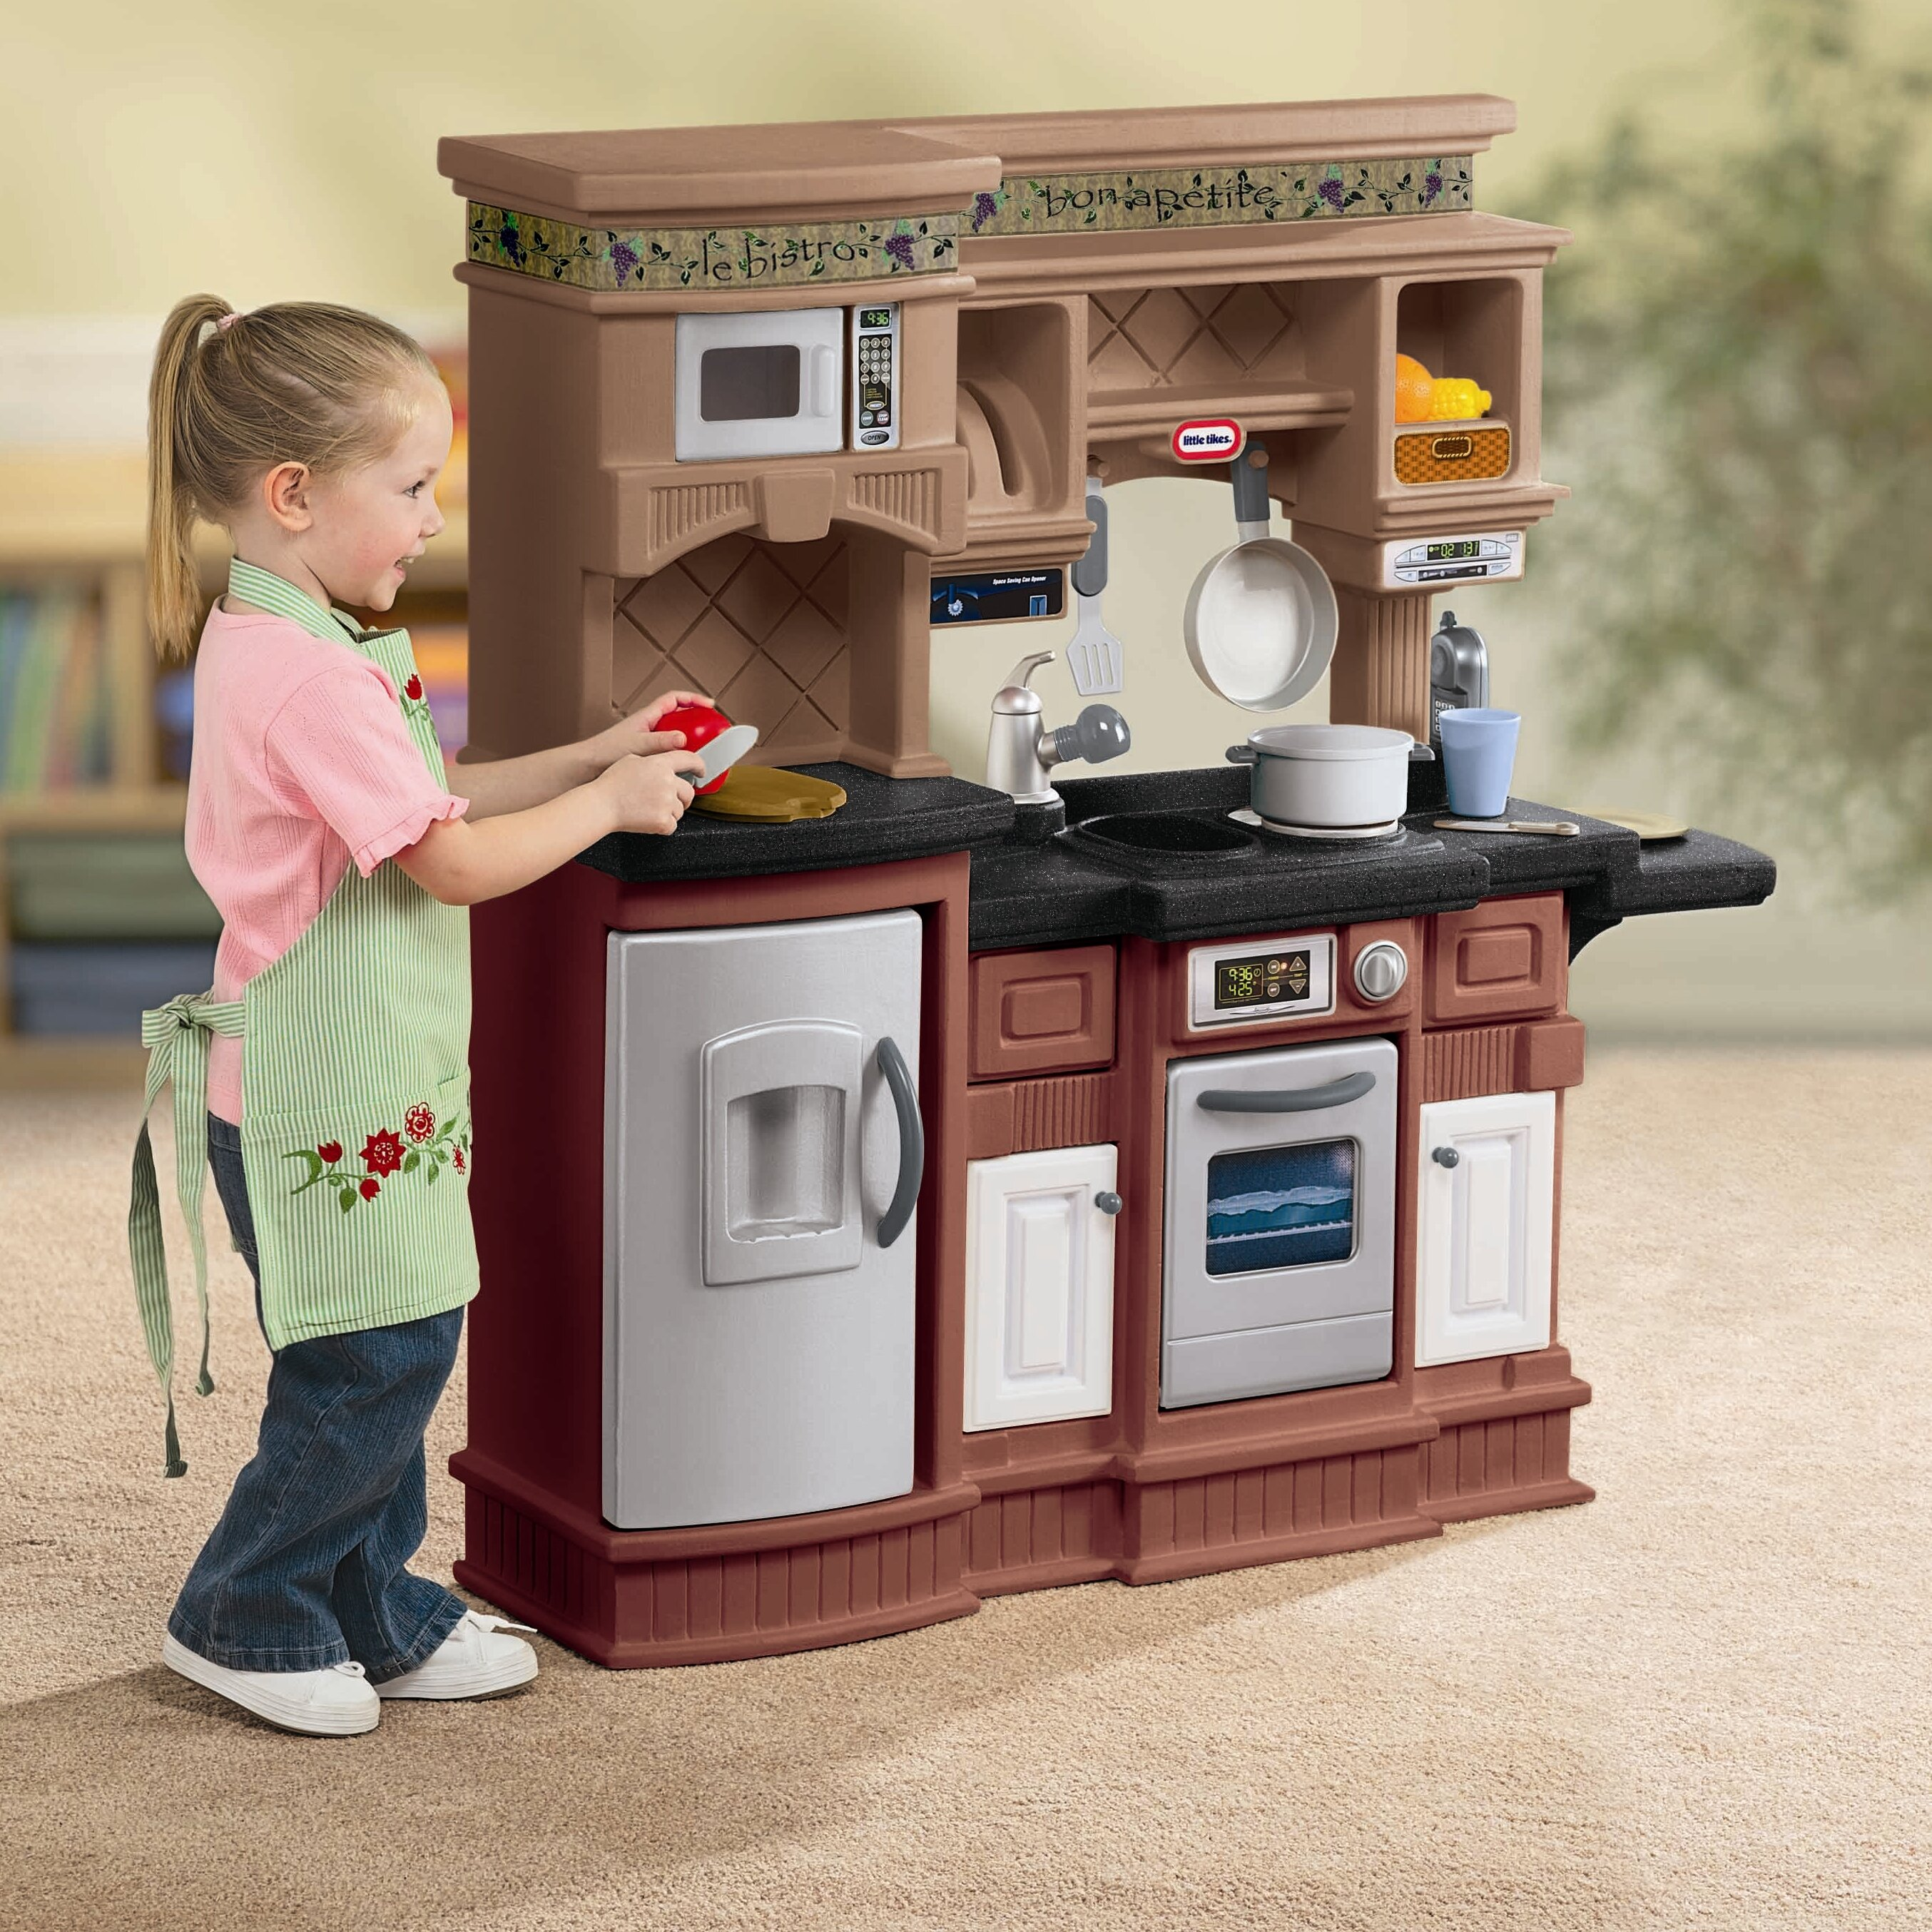 The Little Tikes Kitchen Set